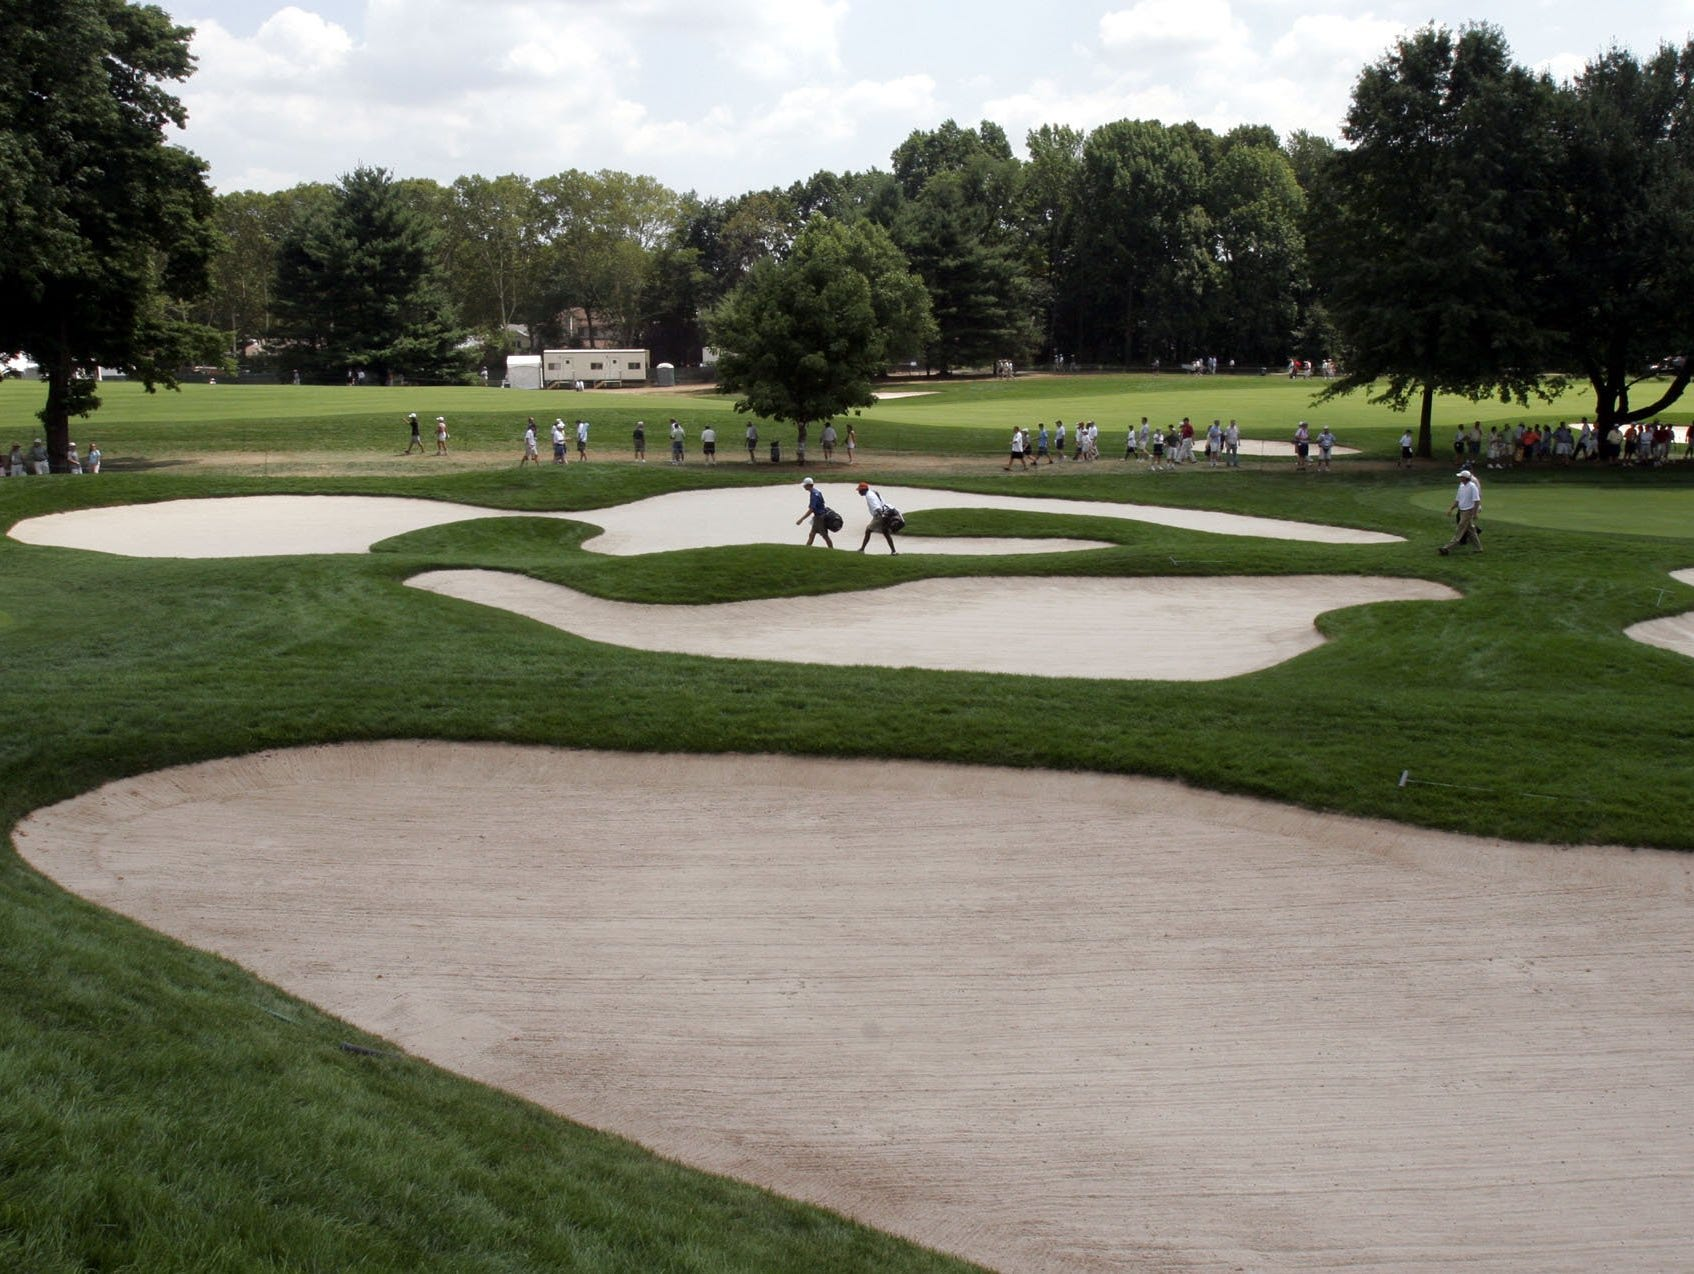 - -Text: Tbound in the center of the par 5, 650 yard, 17th hole at the 87th PGA Championship at the Baltusrol Golf Club in Springfield, New Jersey, August 10, 2005. ( Mark Vergari / The Journal News )